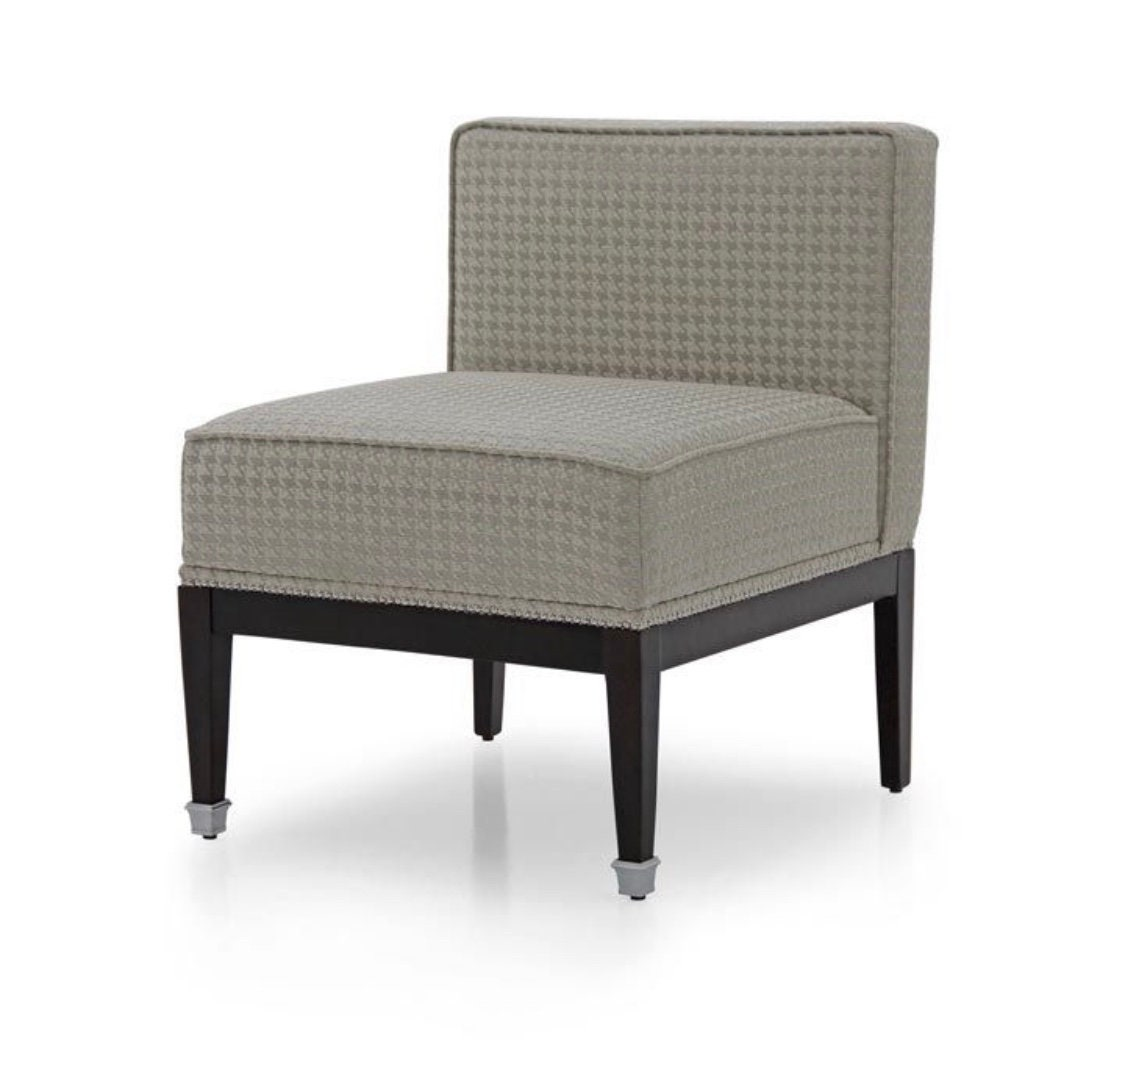 Cubo Chair Armchair Bespoke Custom Finished Wood Upholstered To Order Handmade Seating By Millmax